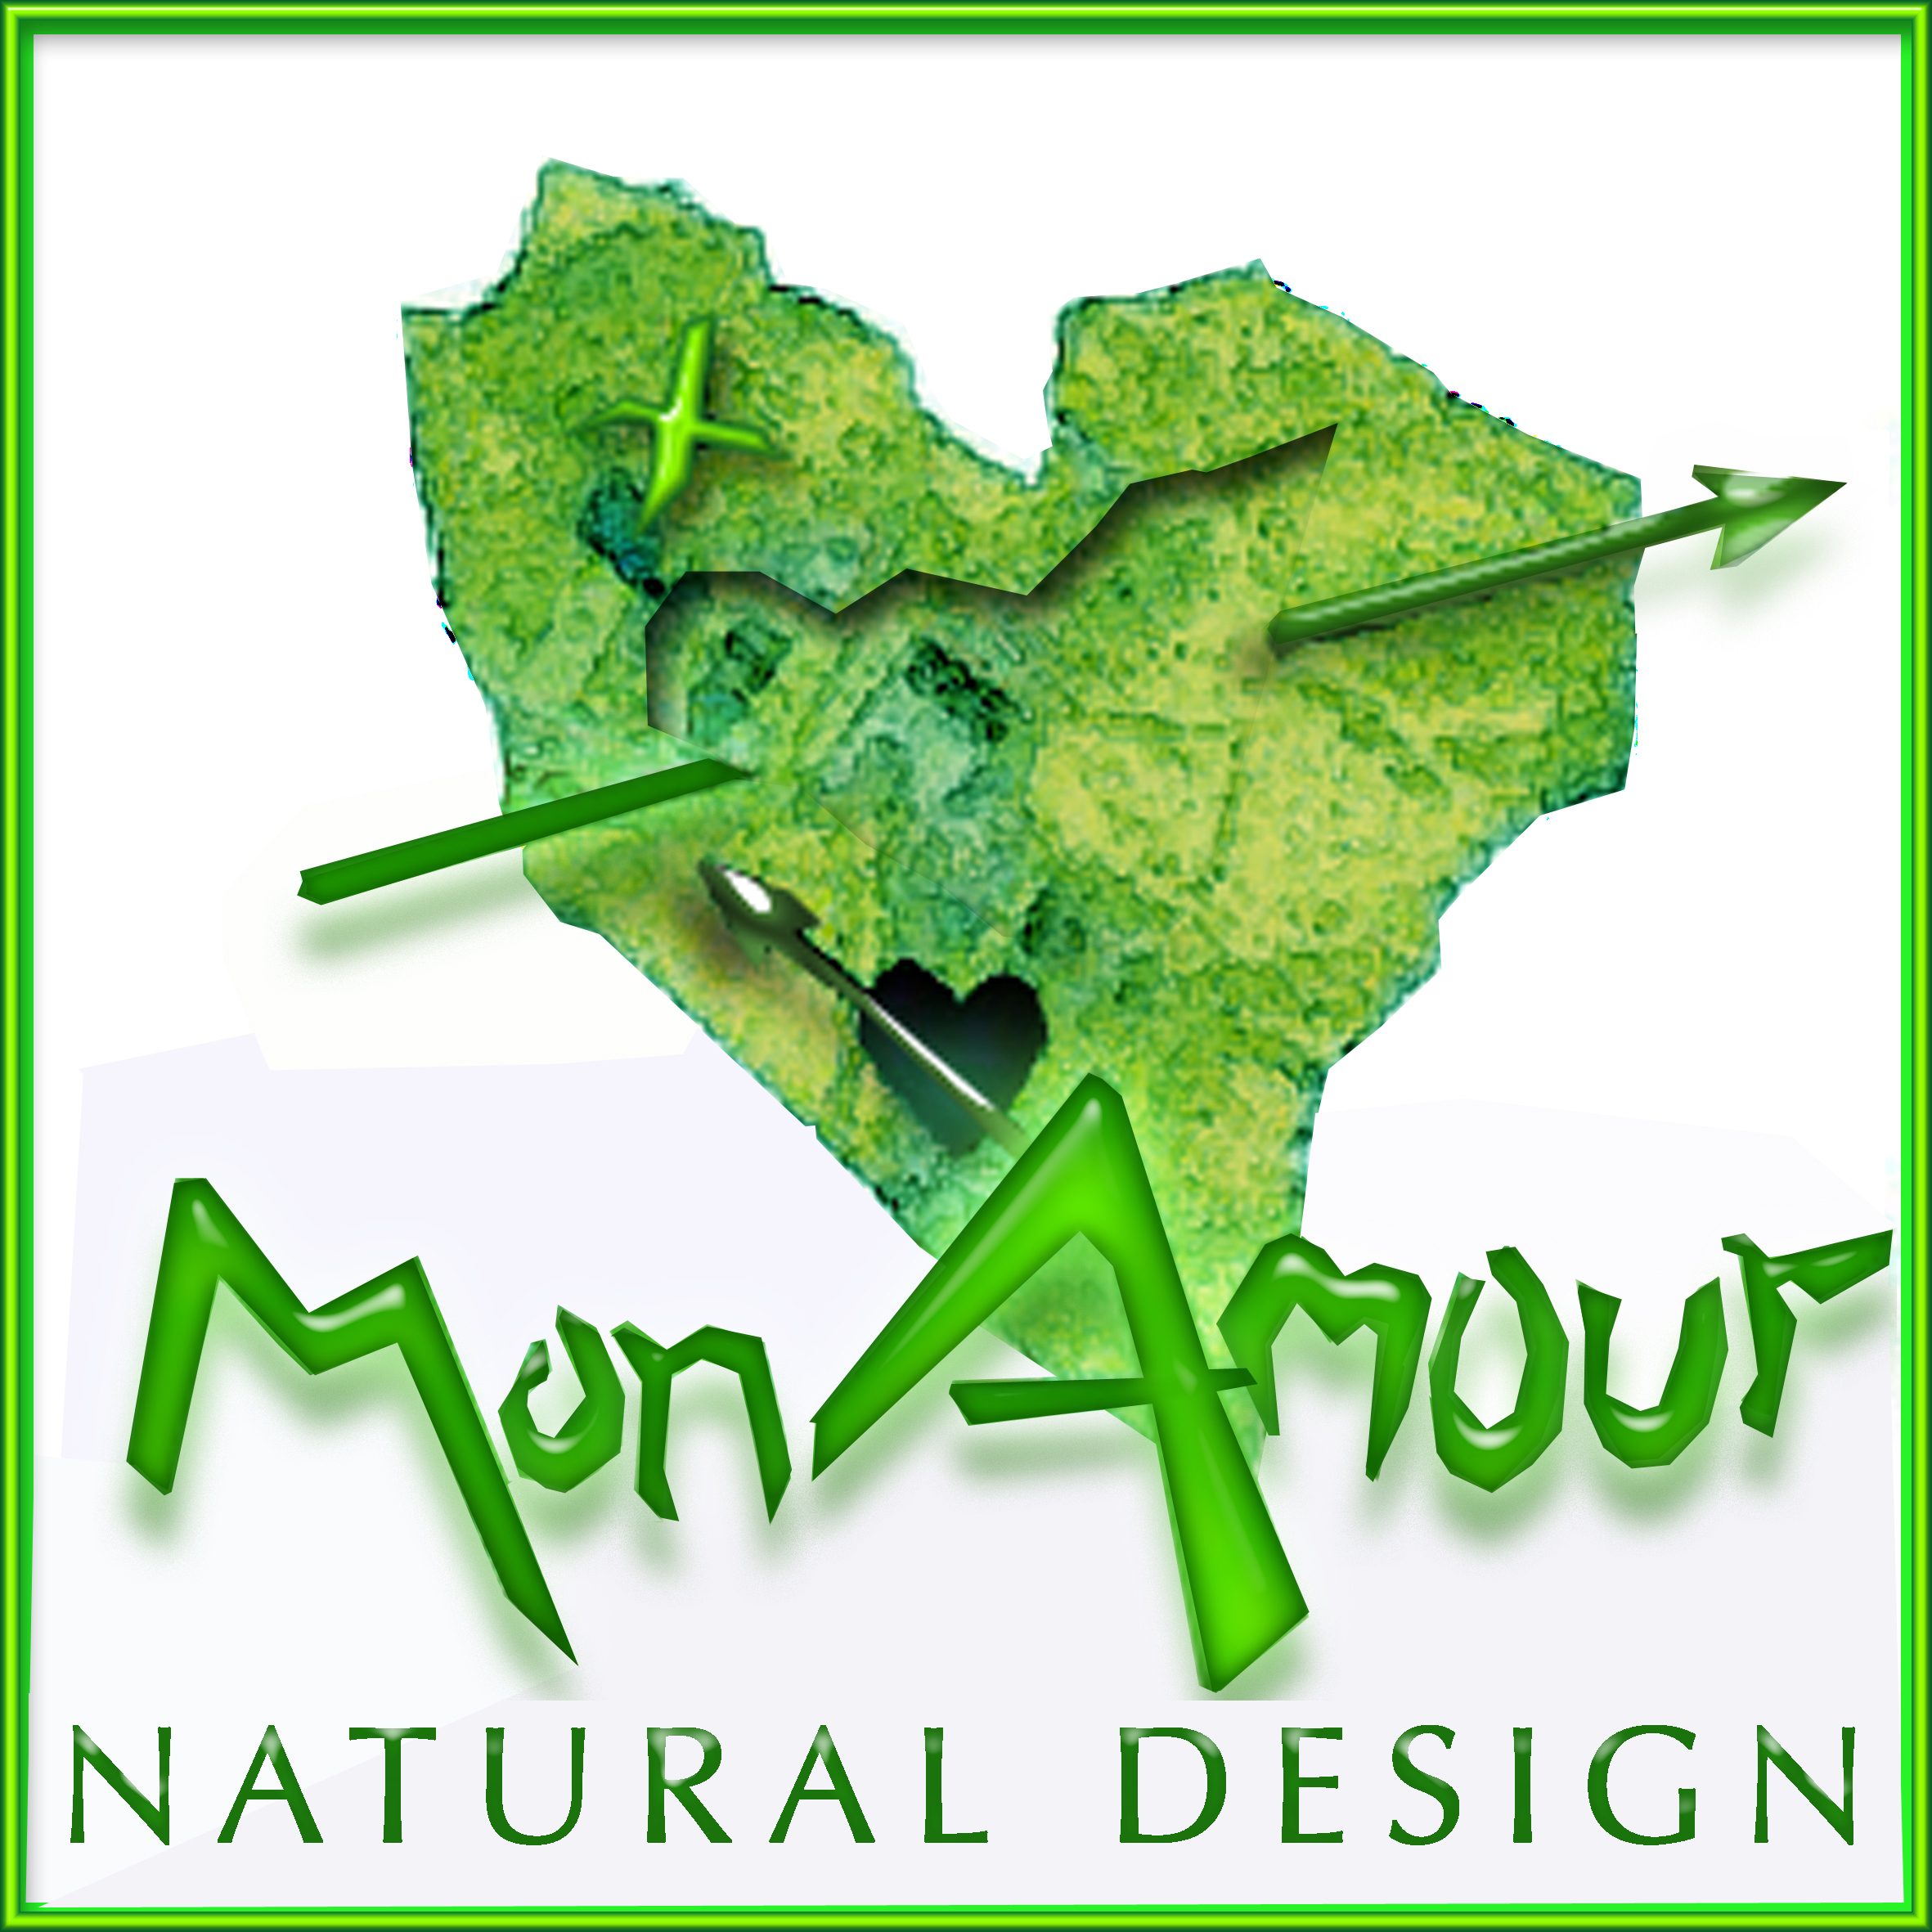 Logotipos vegetales monamour natural design for Plantas liofilizadas